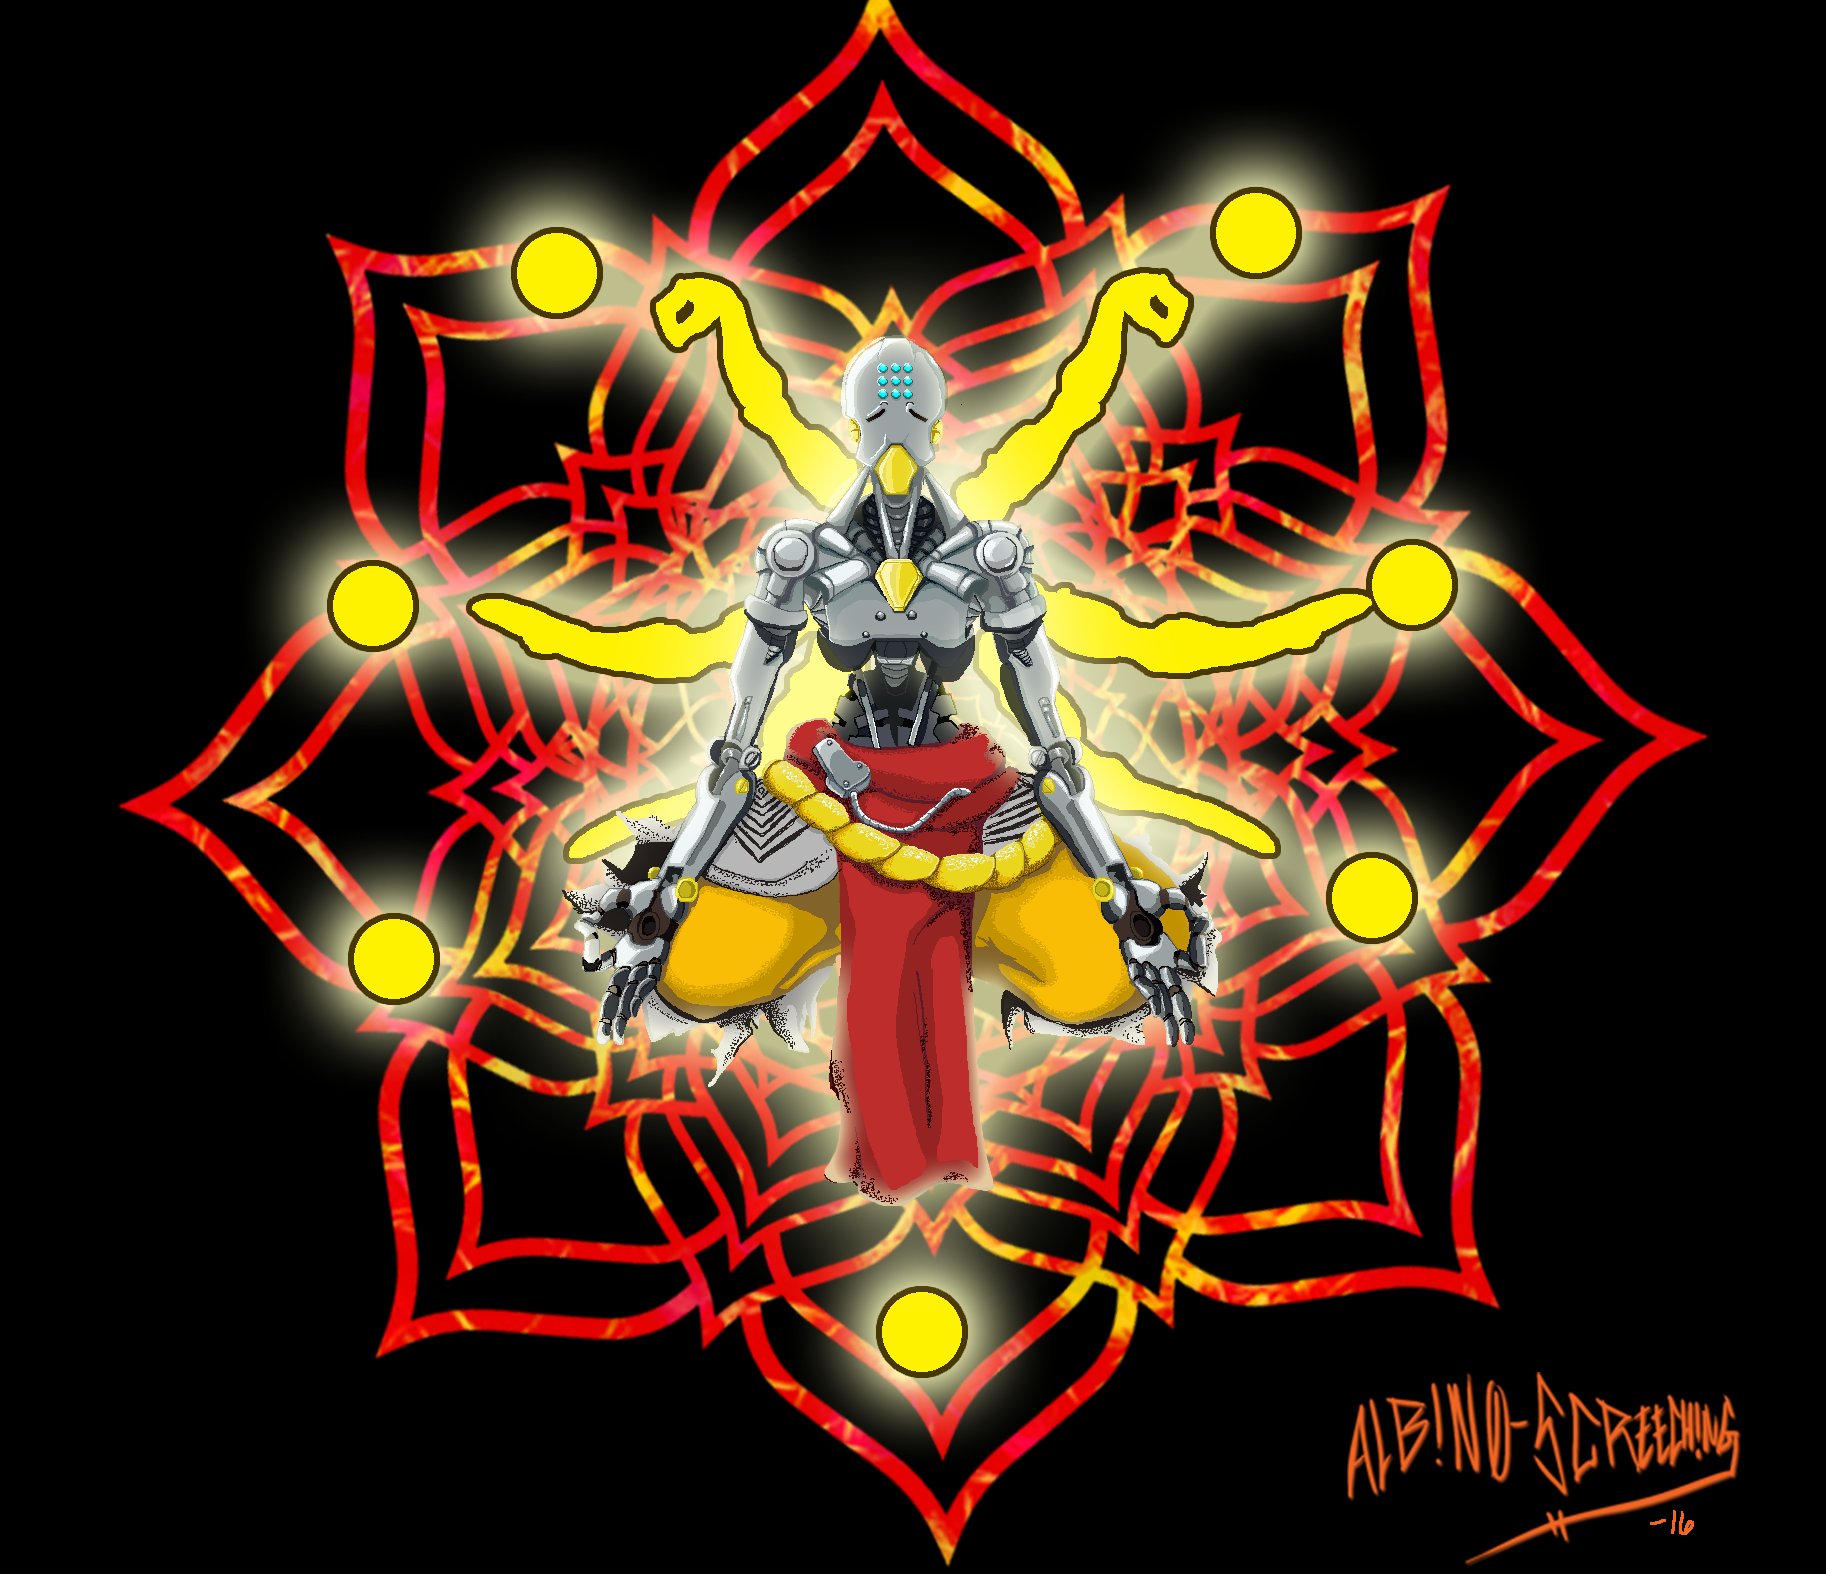 Experience Tranquility